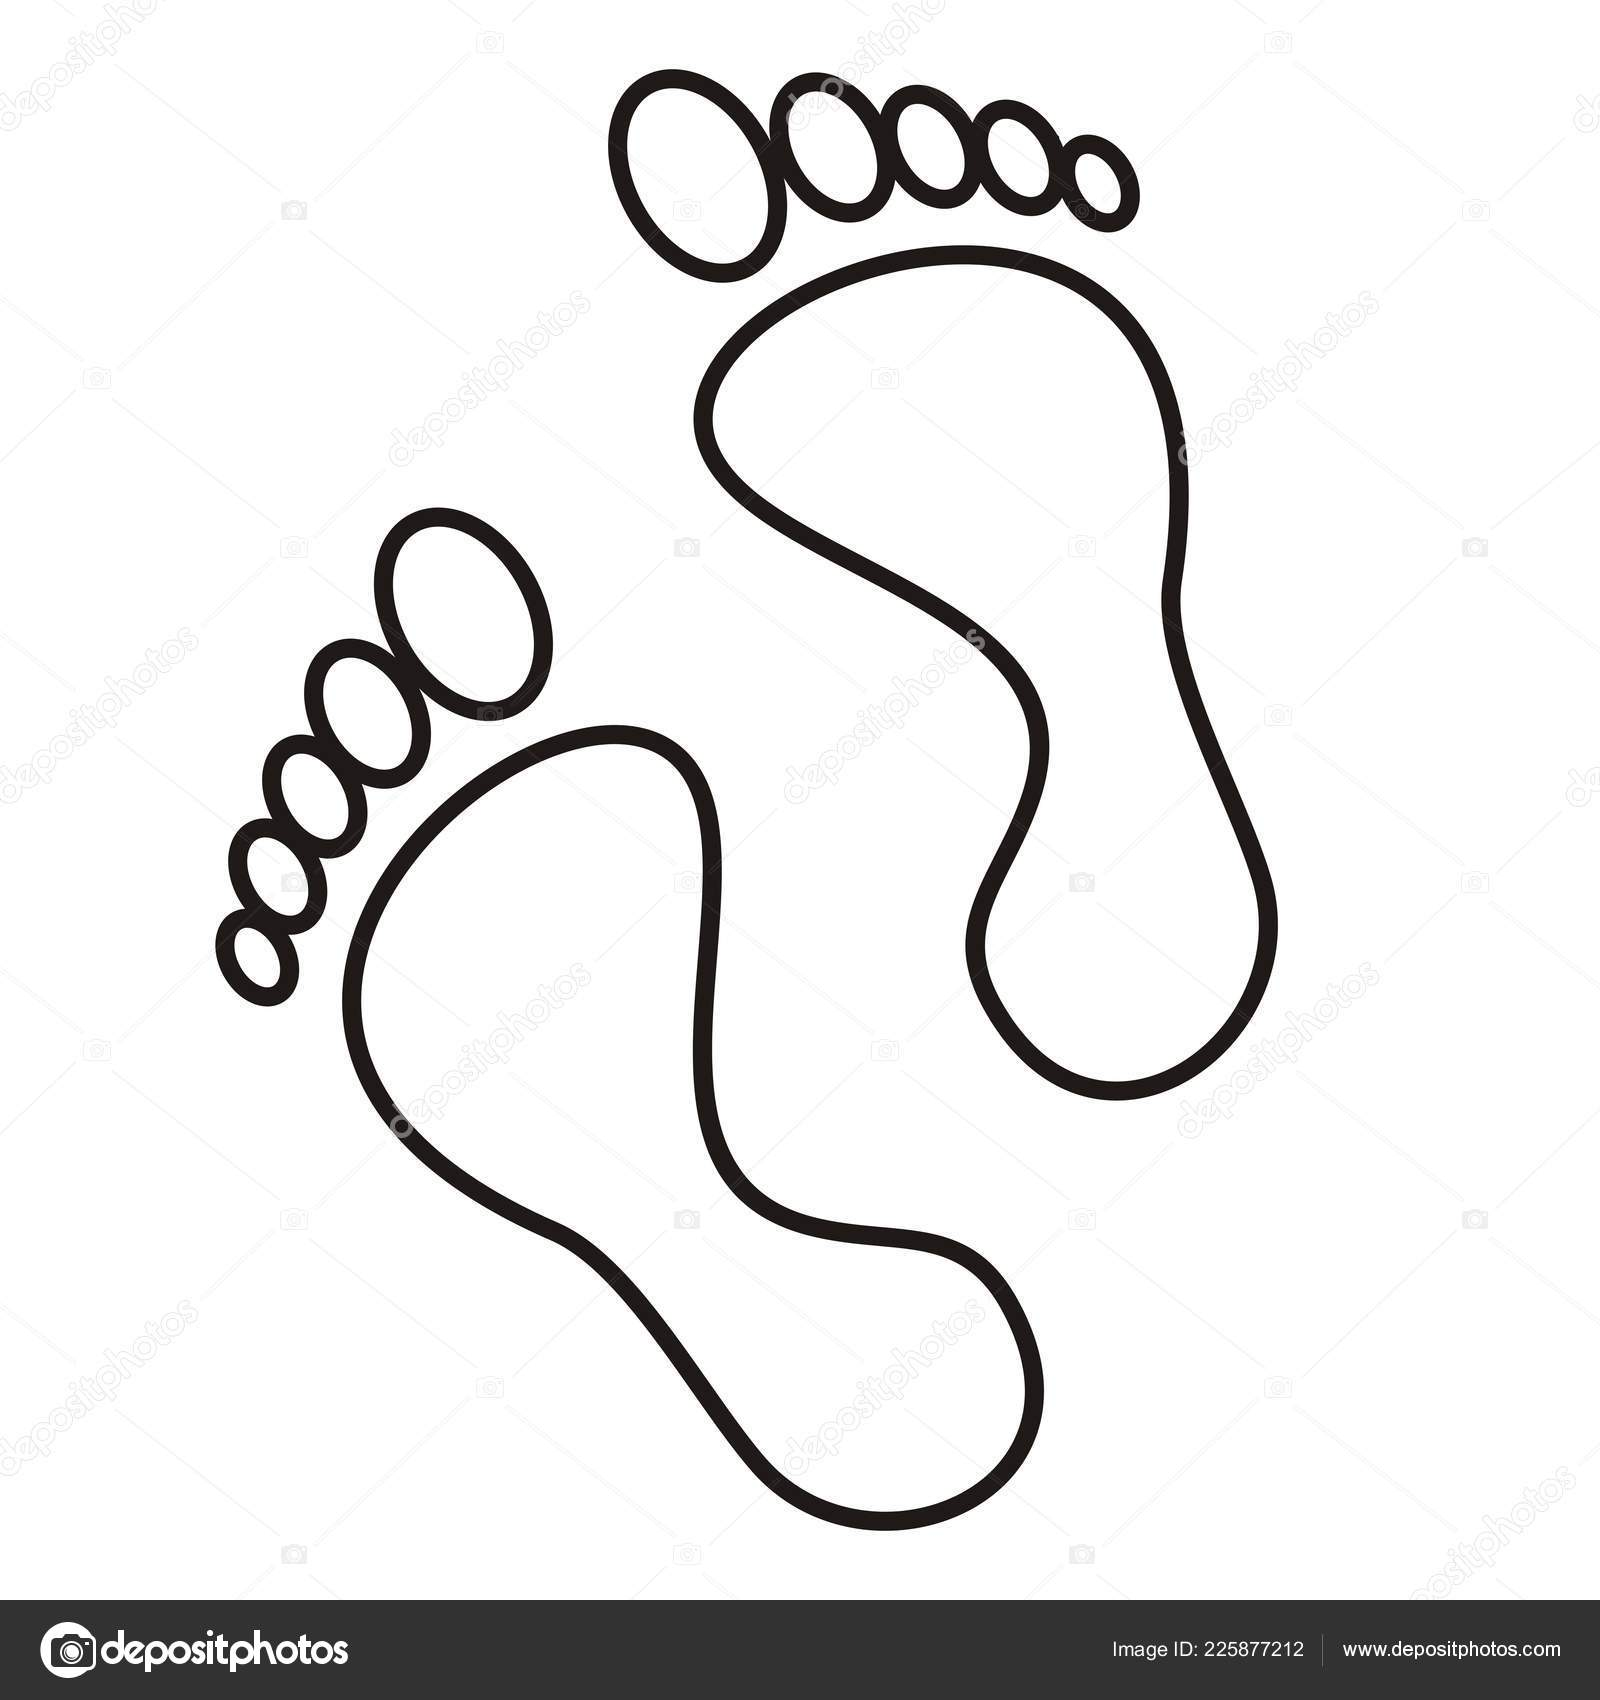 Two Feet Contour Drawing Vector Icon